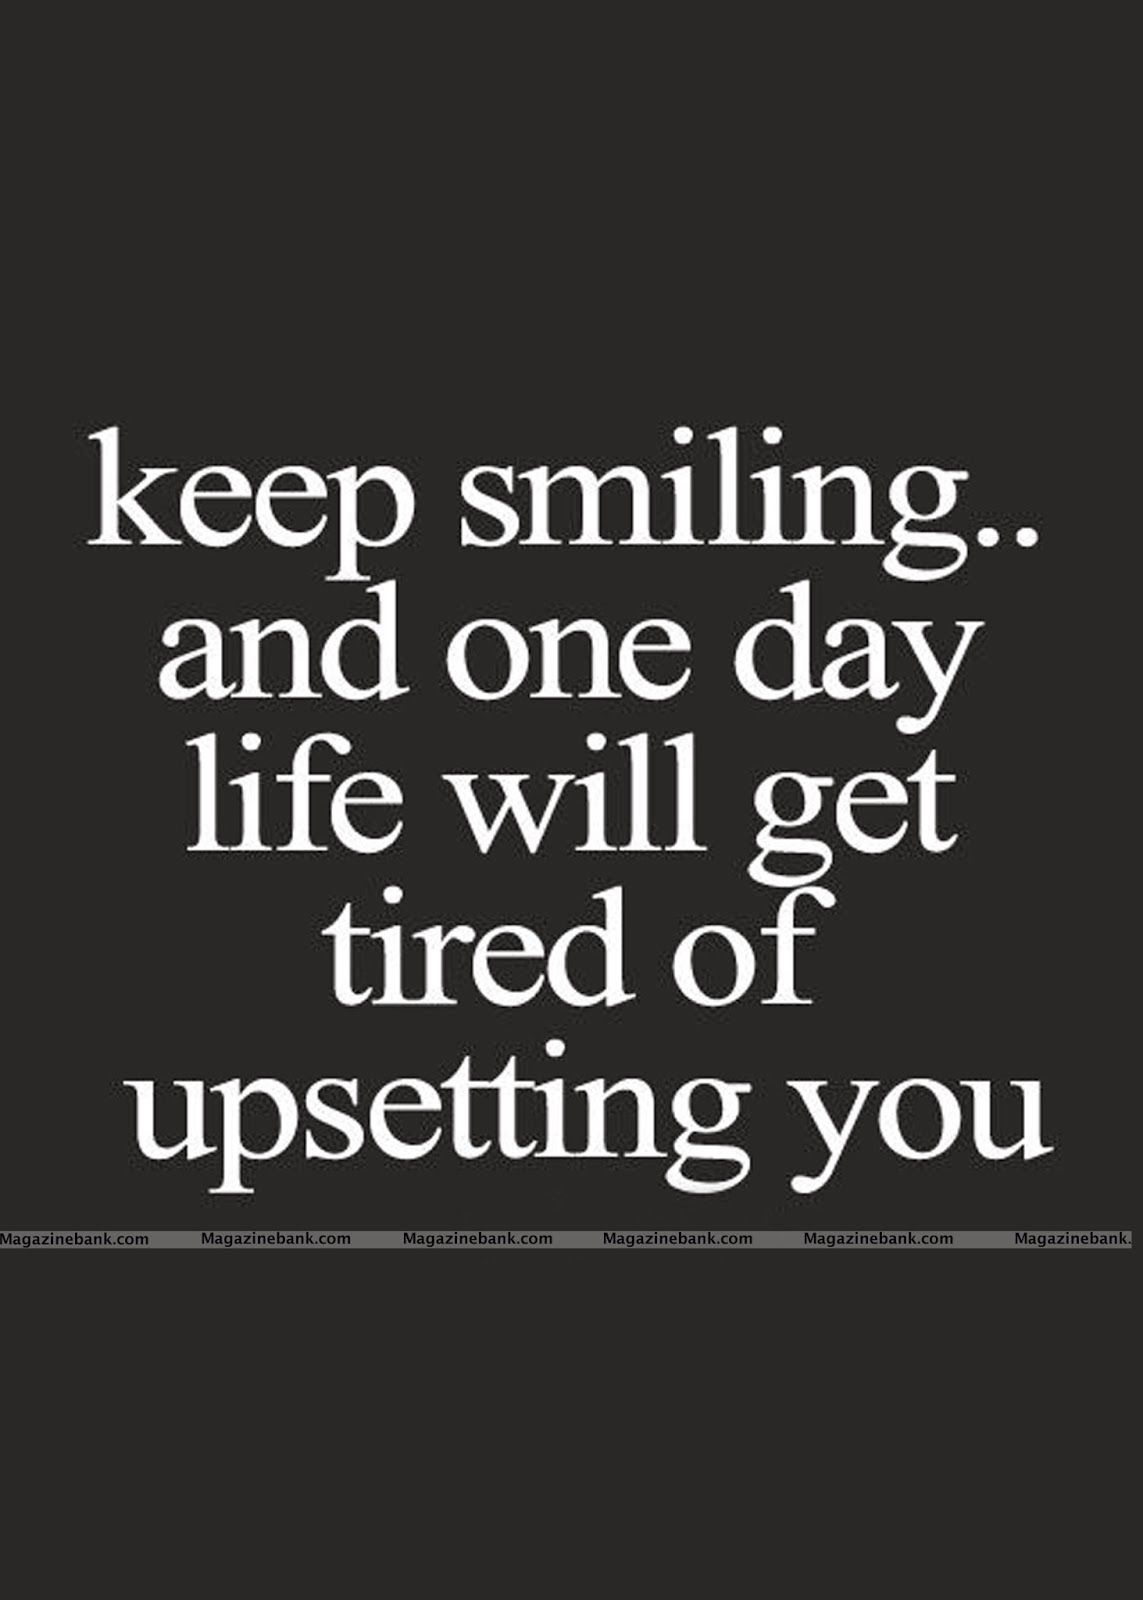 Keep smiling and one day life will get tired of upsetting